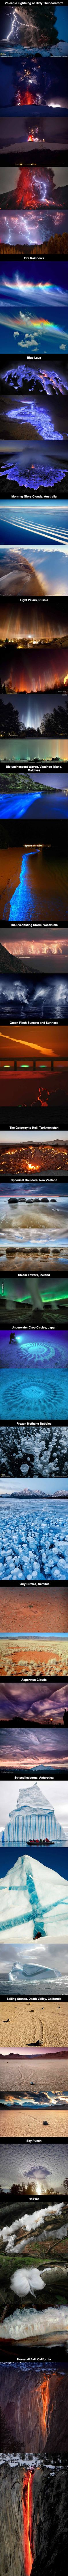 Awesome Natural Phenomena